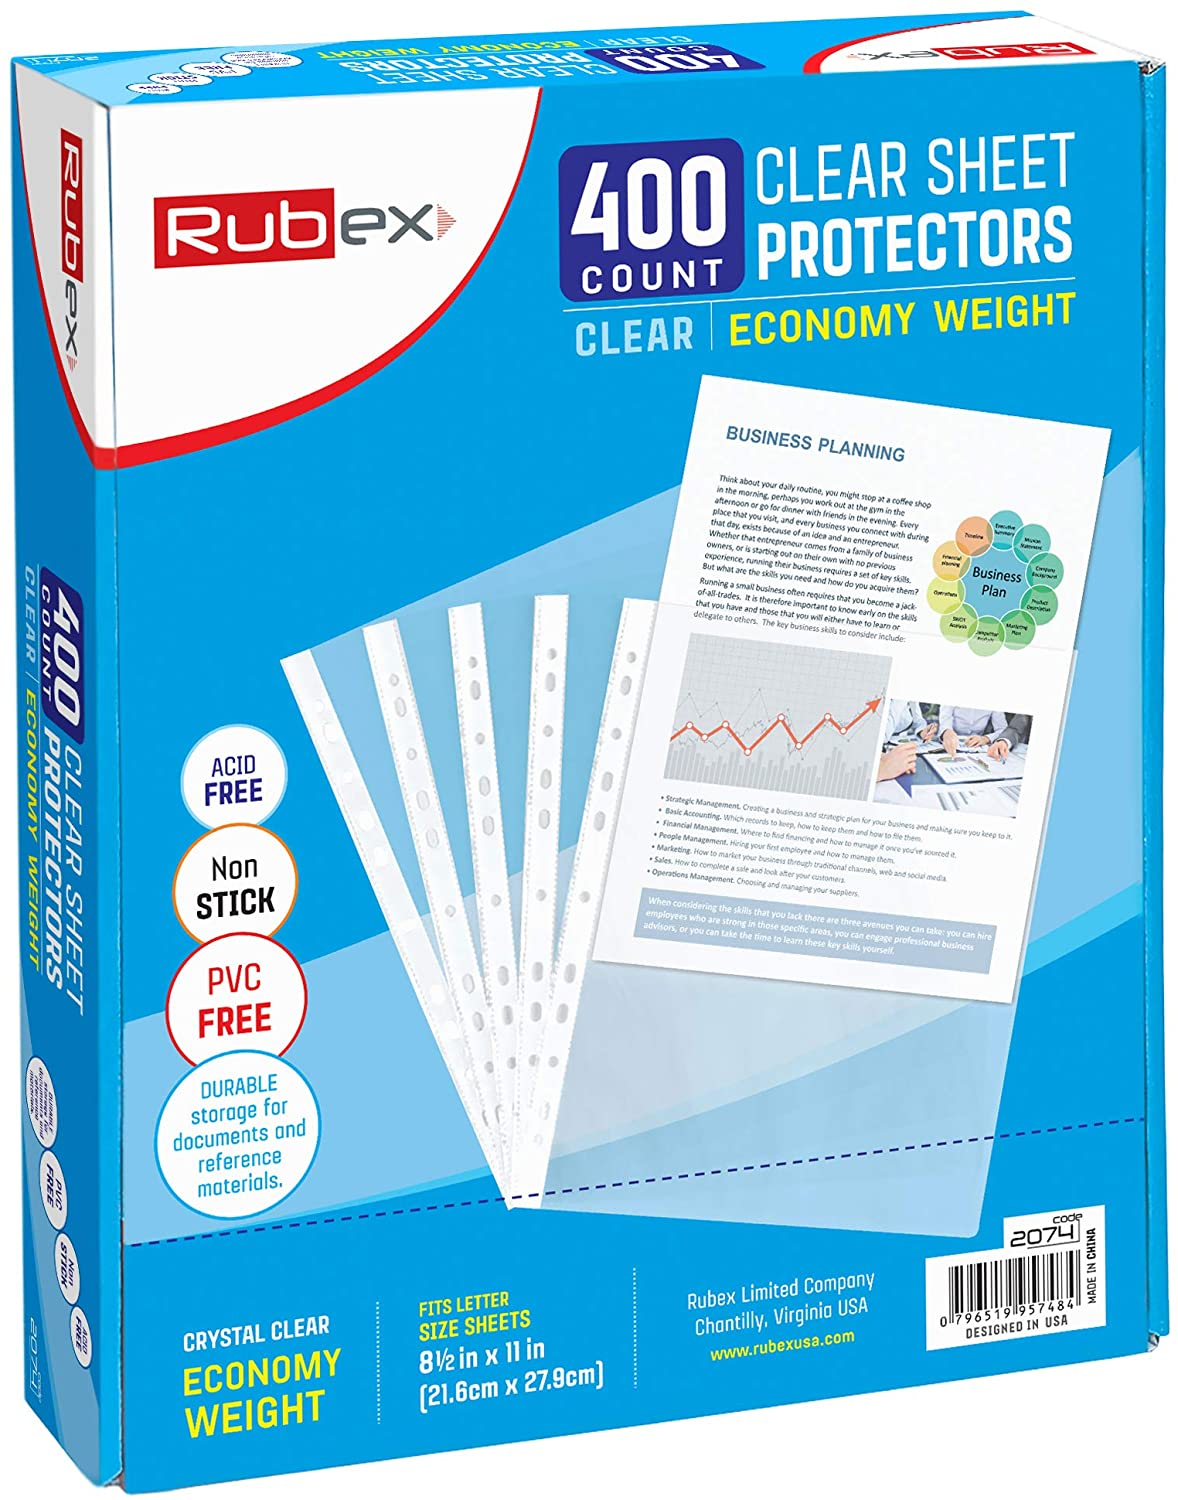 RUBEX Sheet Protectors 8.5 x 11 Inches - Clear Plastic Sheet Protector Sleeves for 3 Ring Binder, Top Loading Letter Size Page Protectors for Binders, Acid-Free Archival of Documents (400 Sheets)